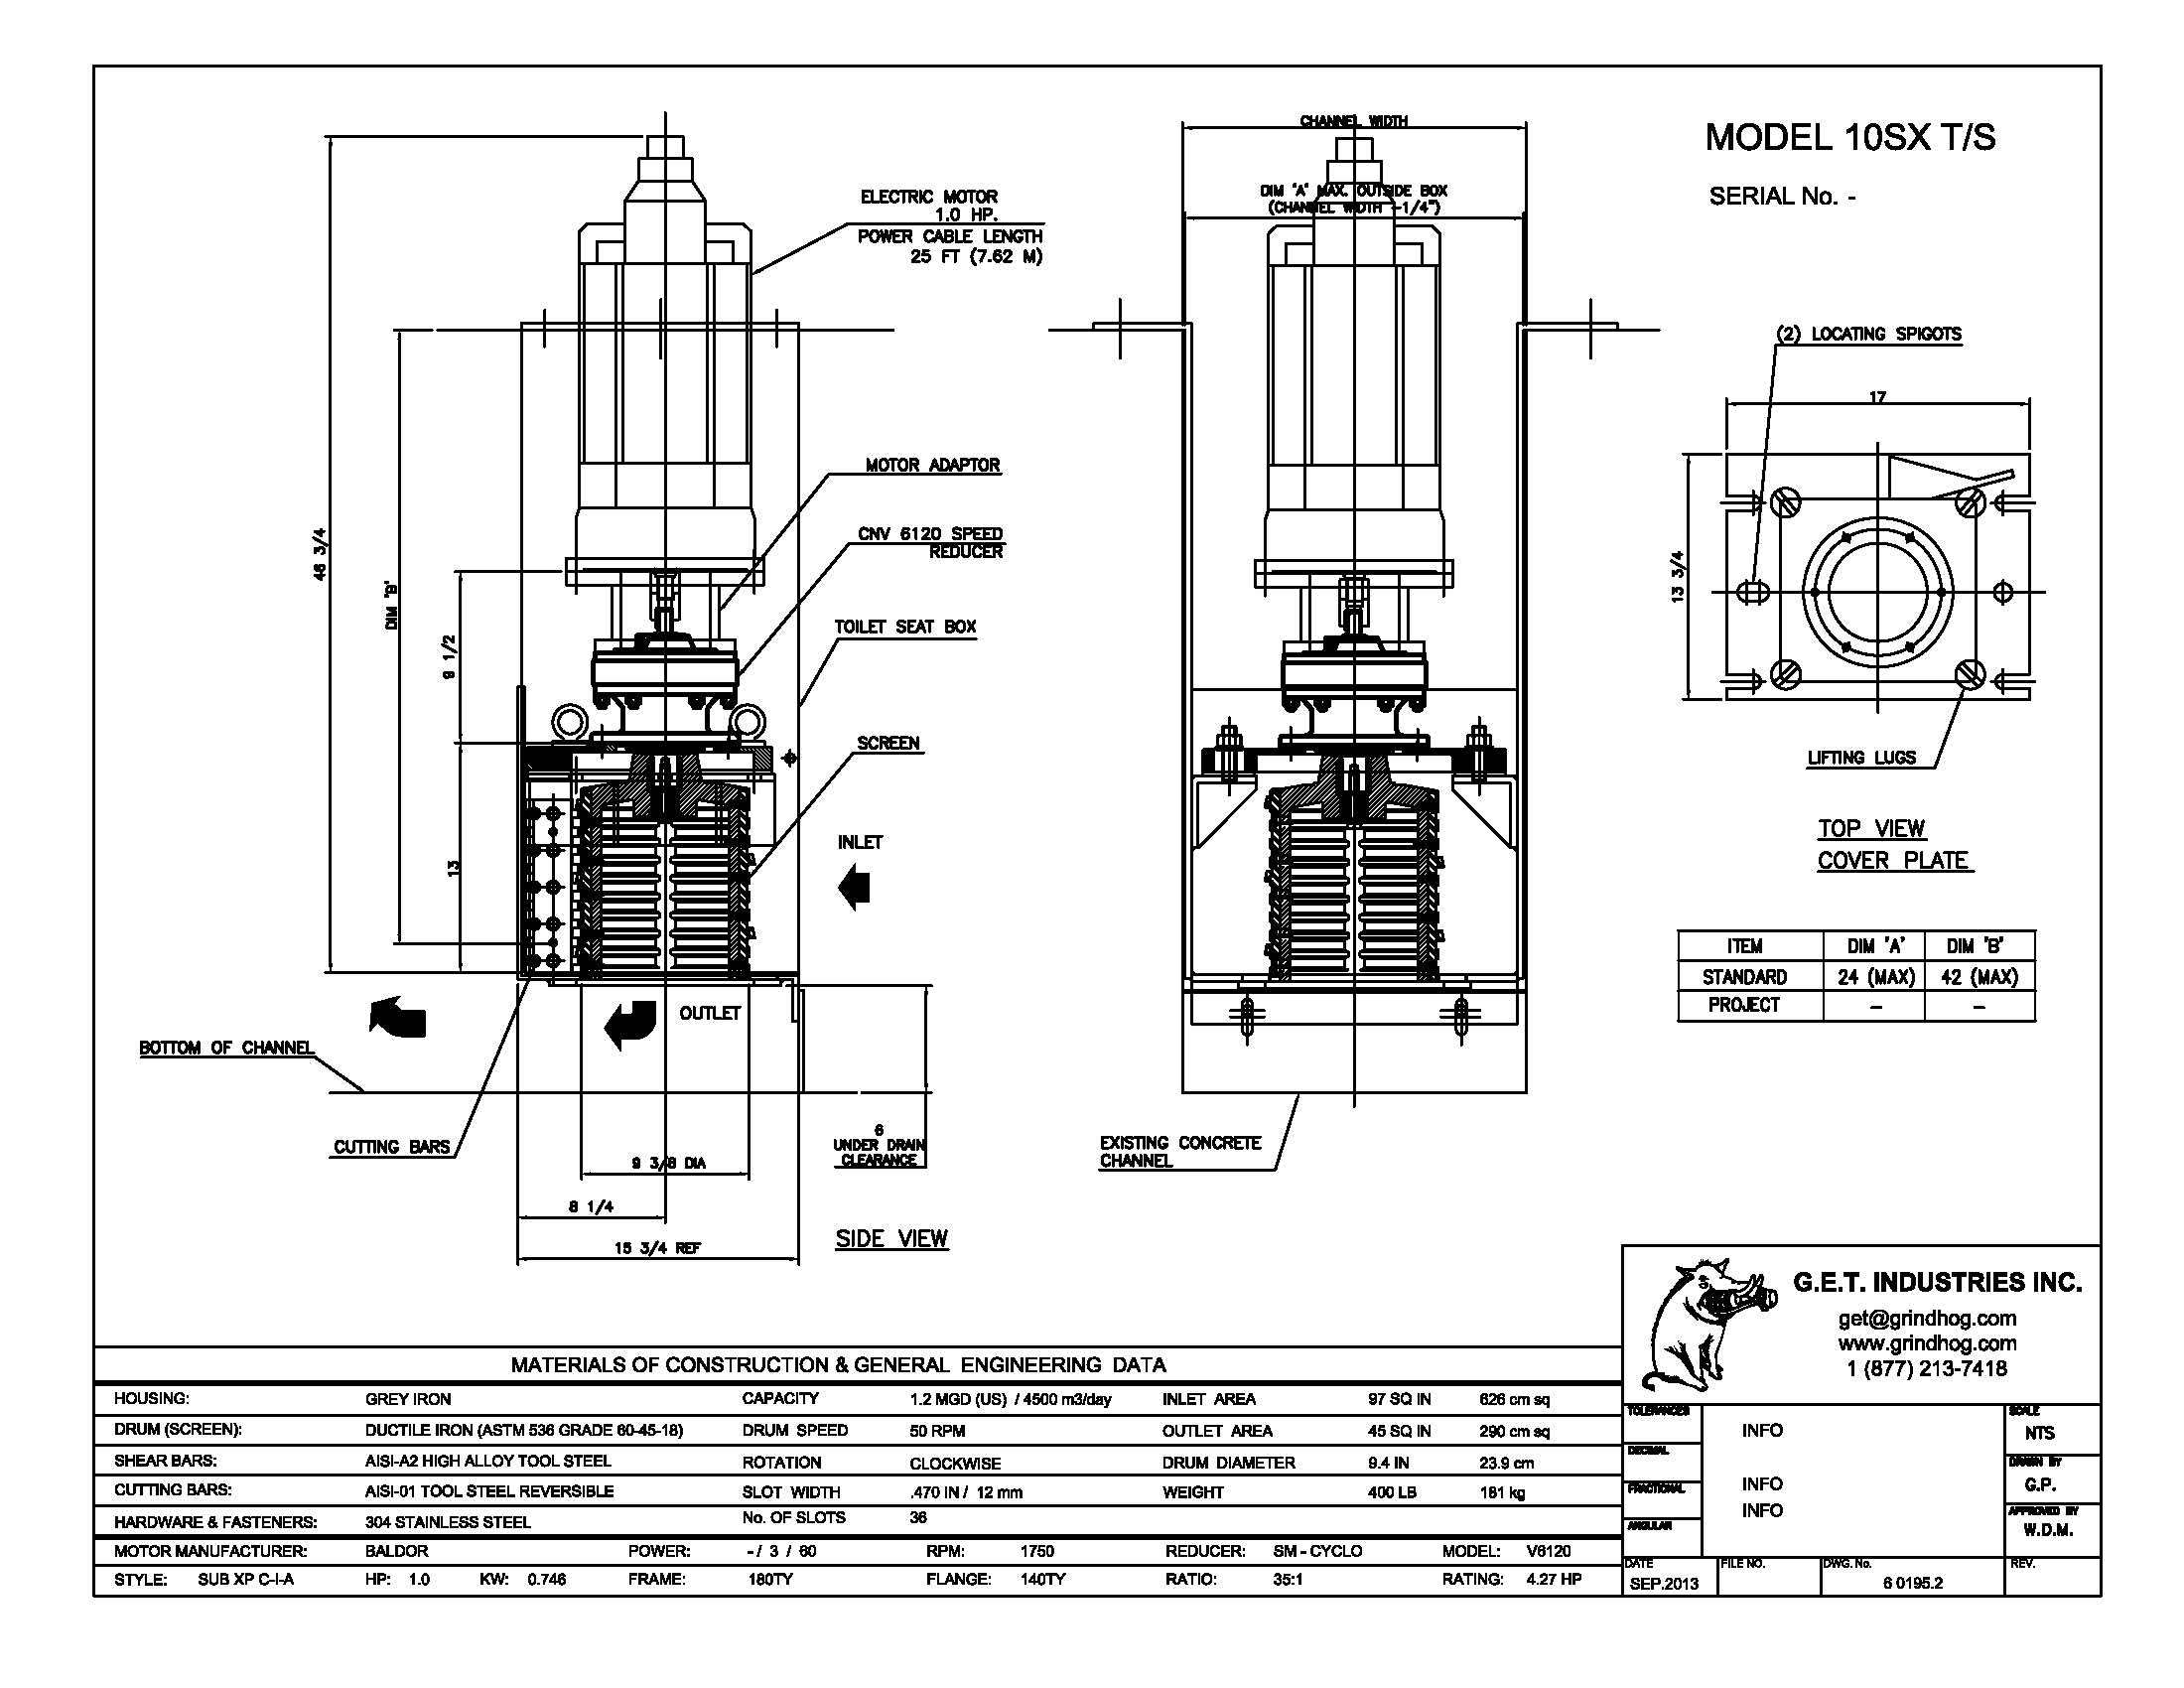 data drawing for Model 10SX T/S